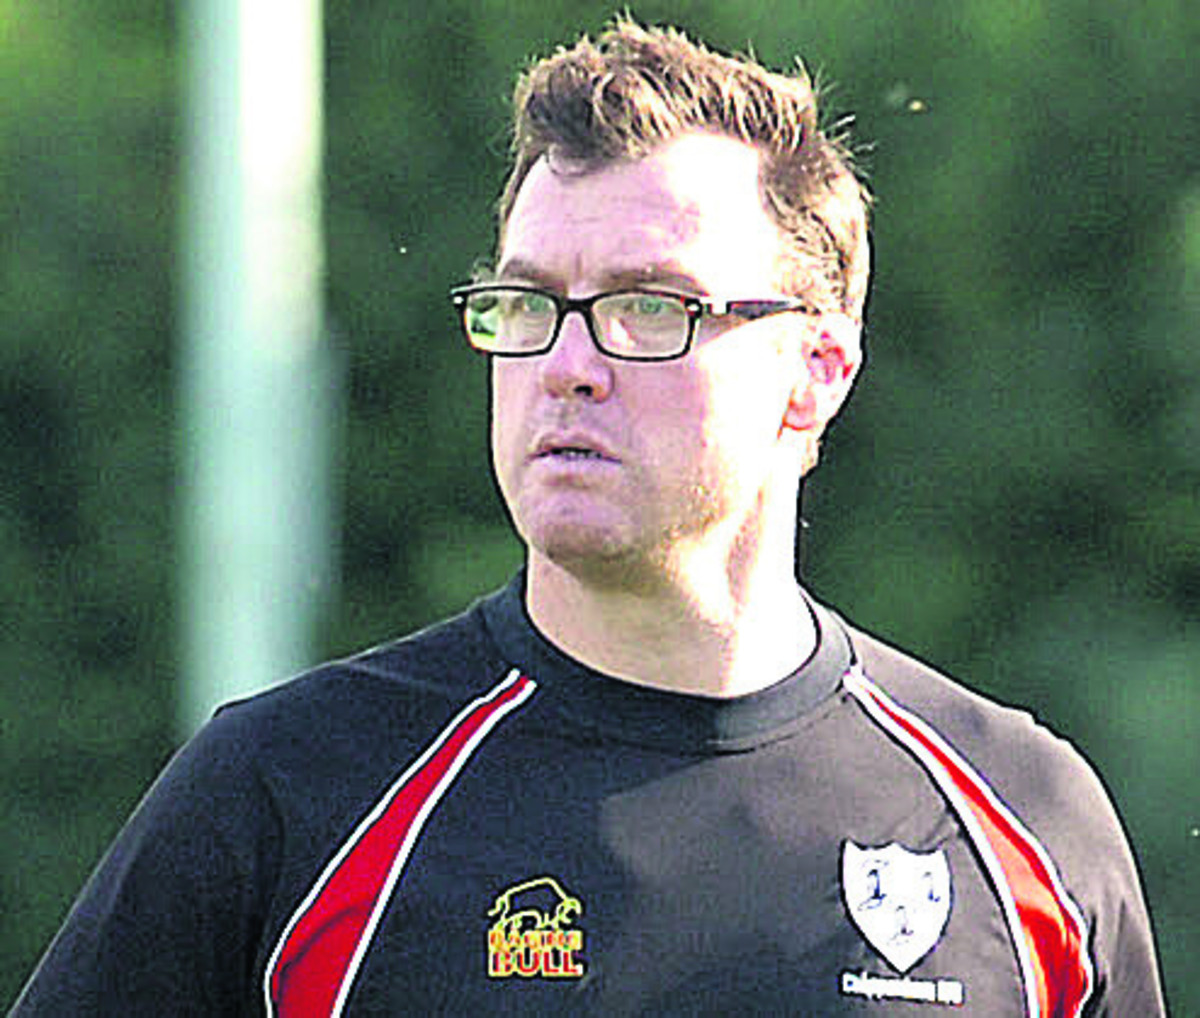 Danny Thomas' Chippenham side were edged close to relegation